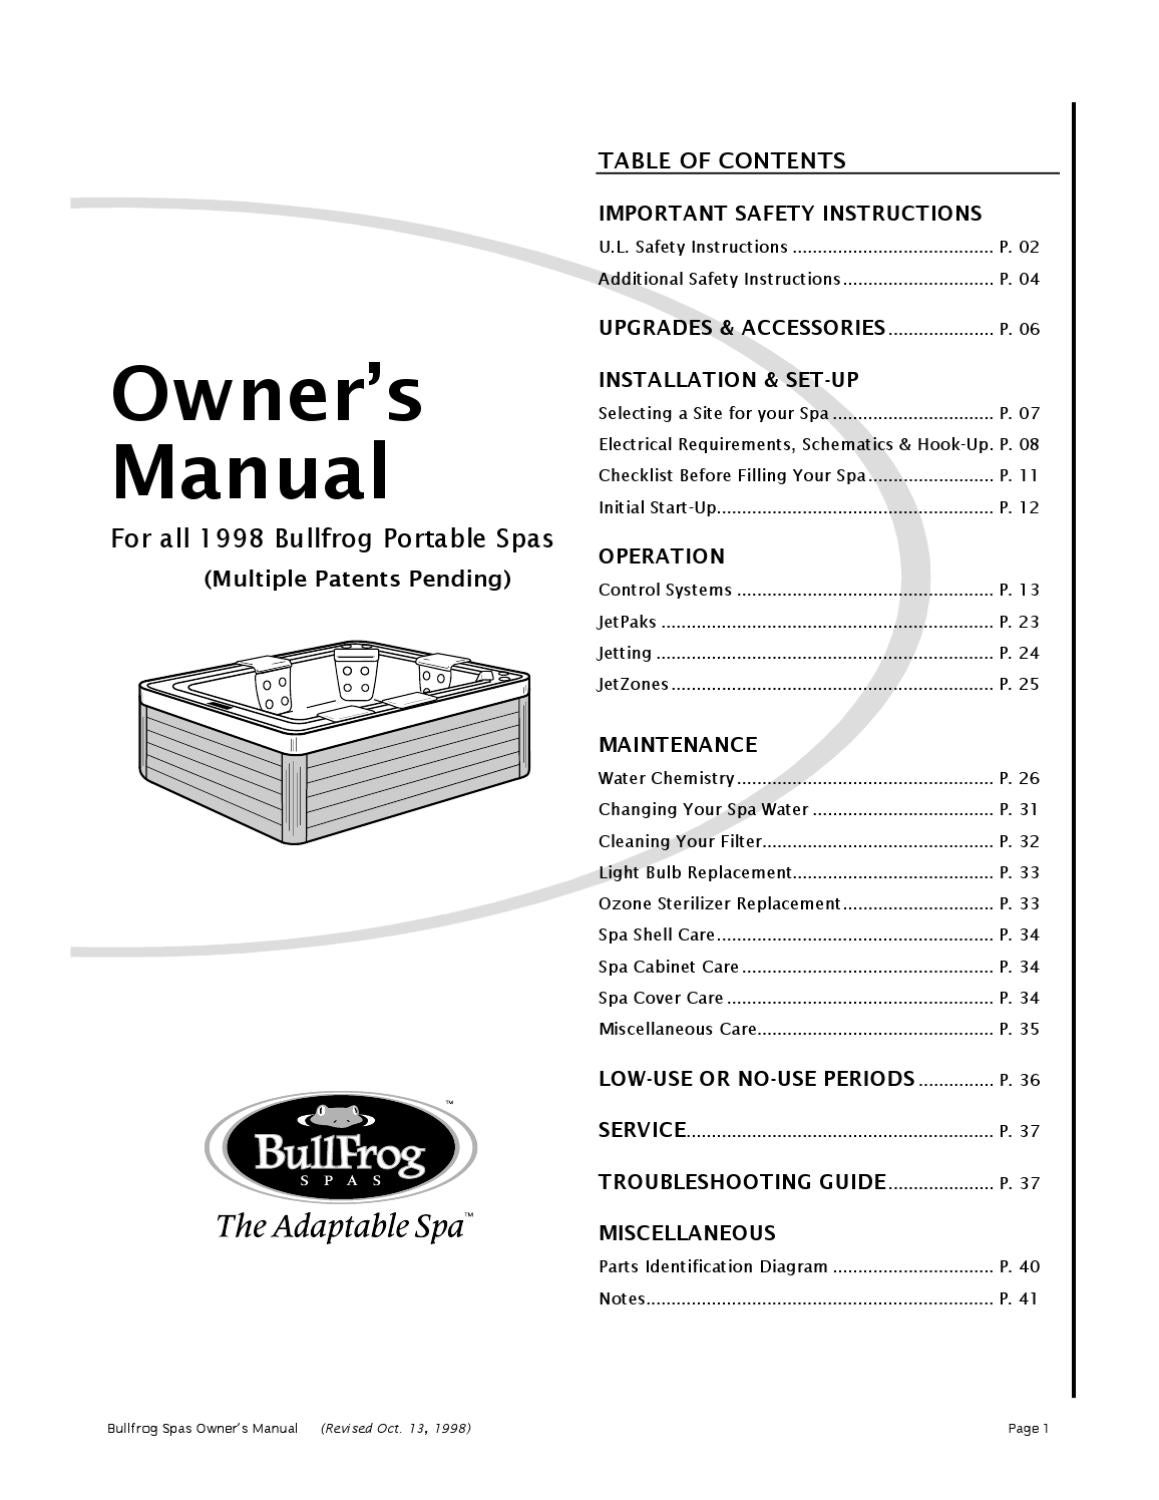 Bullfrog Spa Owners Manual 1998 By Envirosmarte Hot Tubs Swim Spas Garden Wiring Diagram Issuu